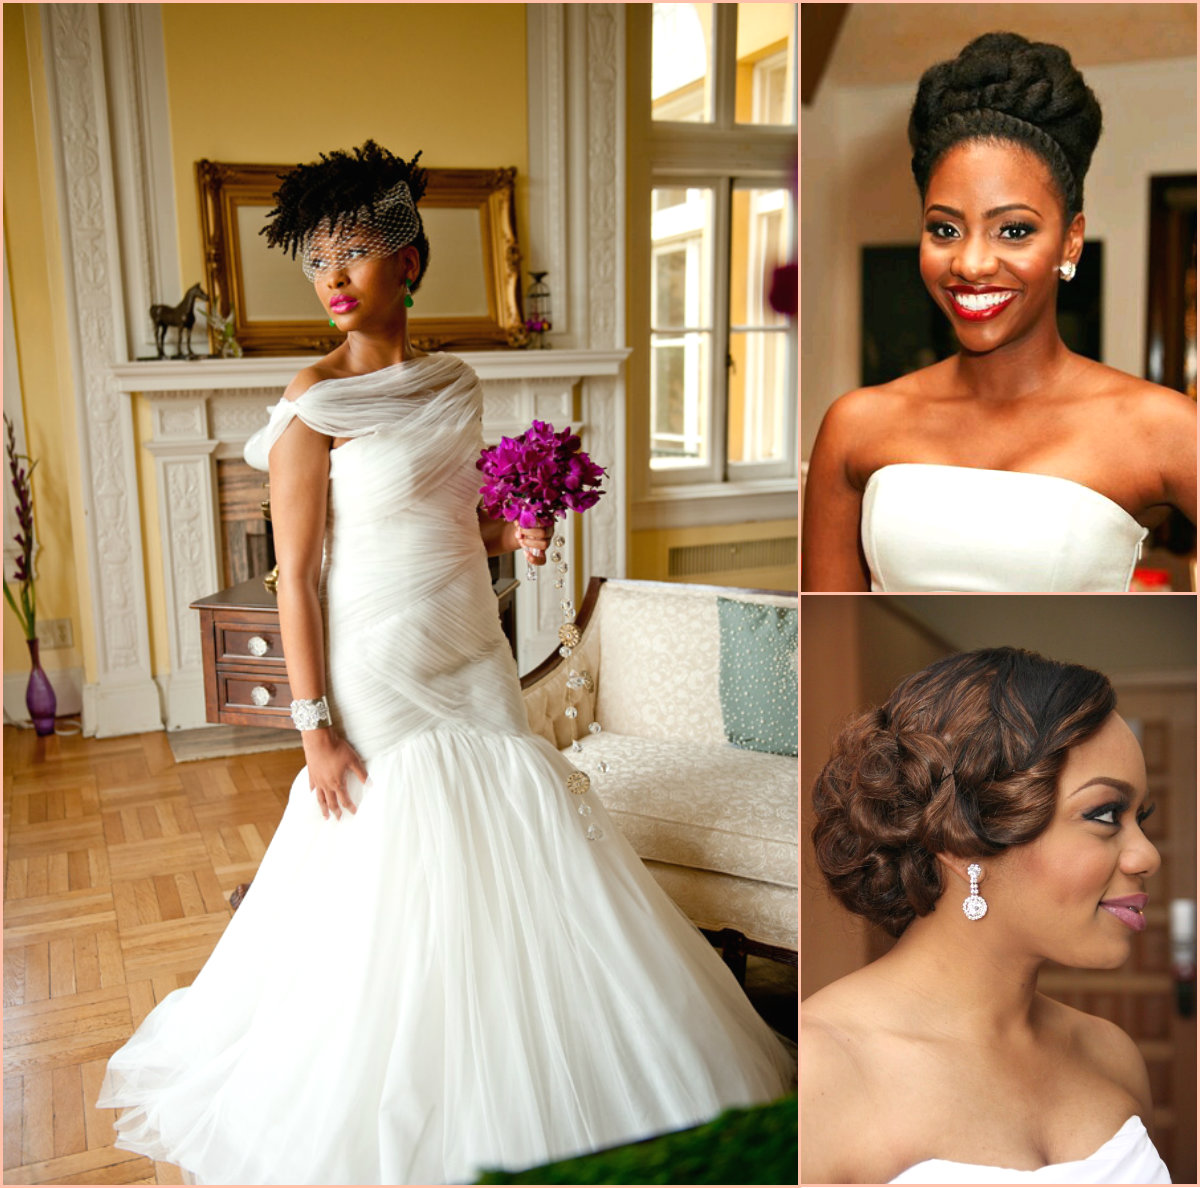 Charming Black Women Wedding Hairstyles | Hairstyles 2017, Hair ...